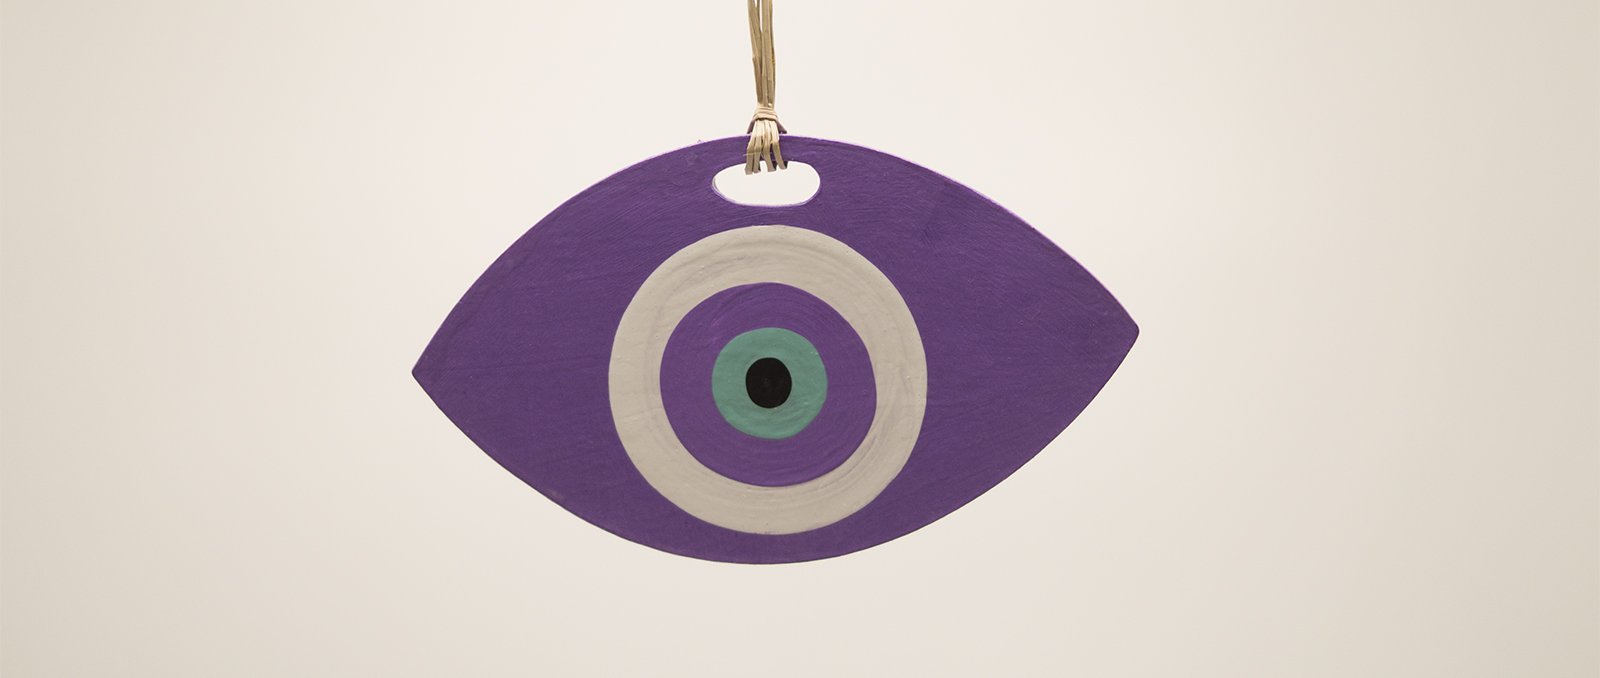 evil-eye-wooden-handmade-purple-oval